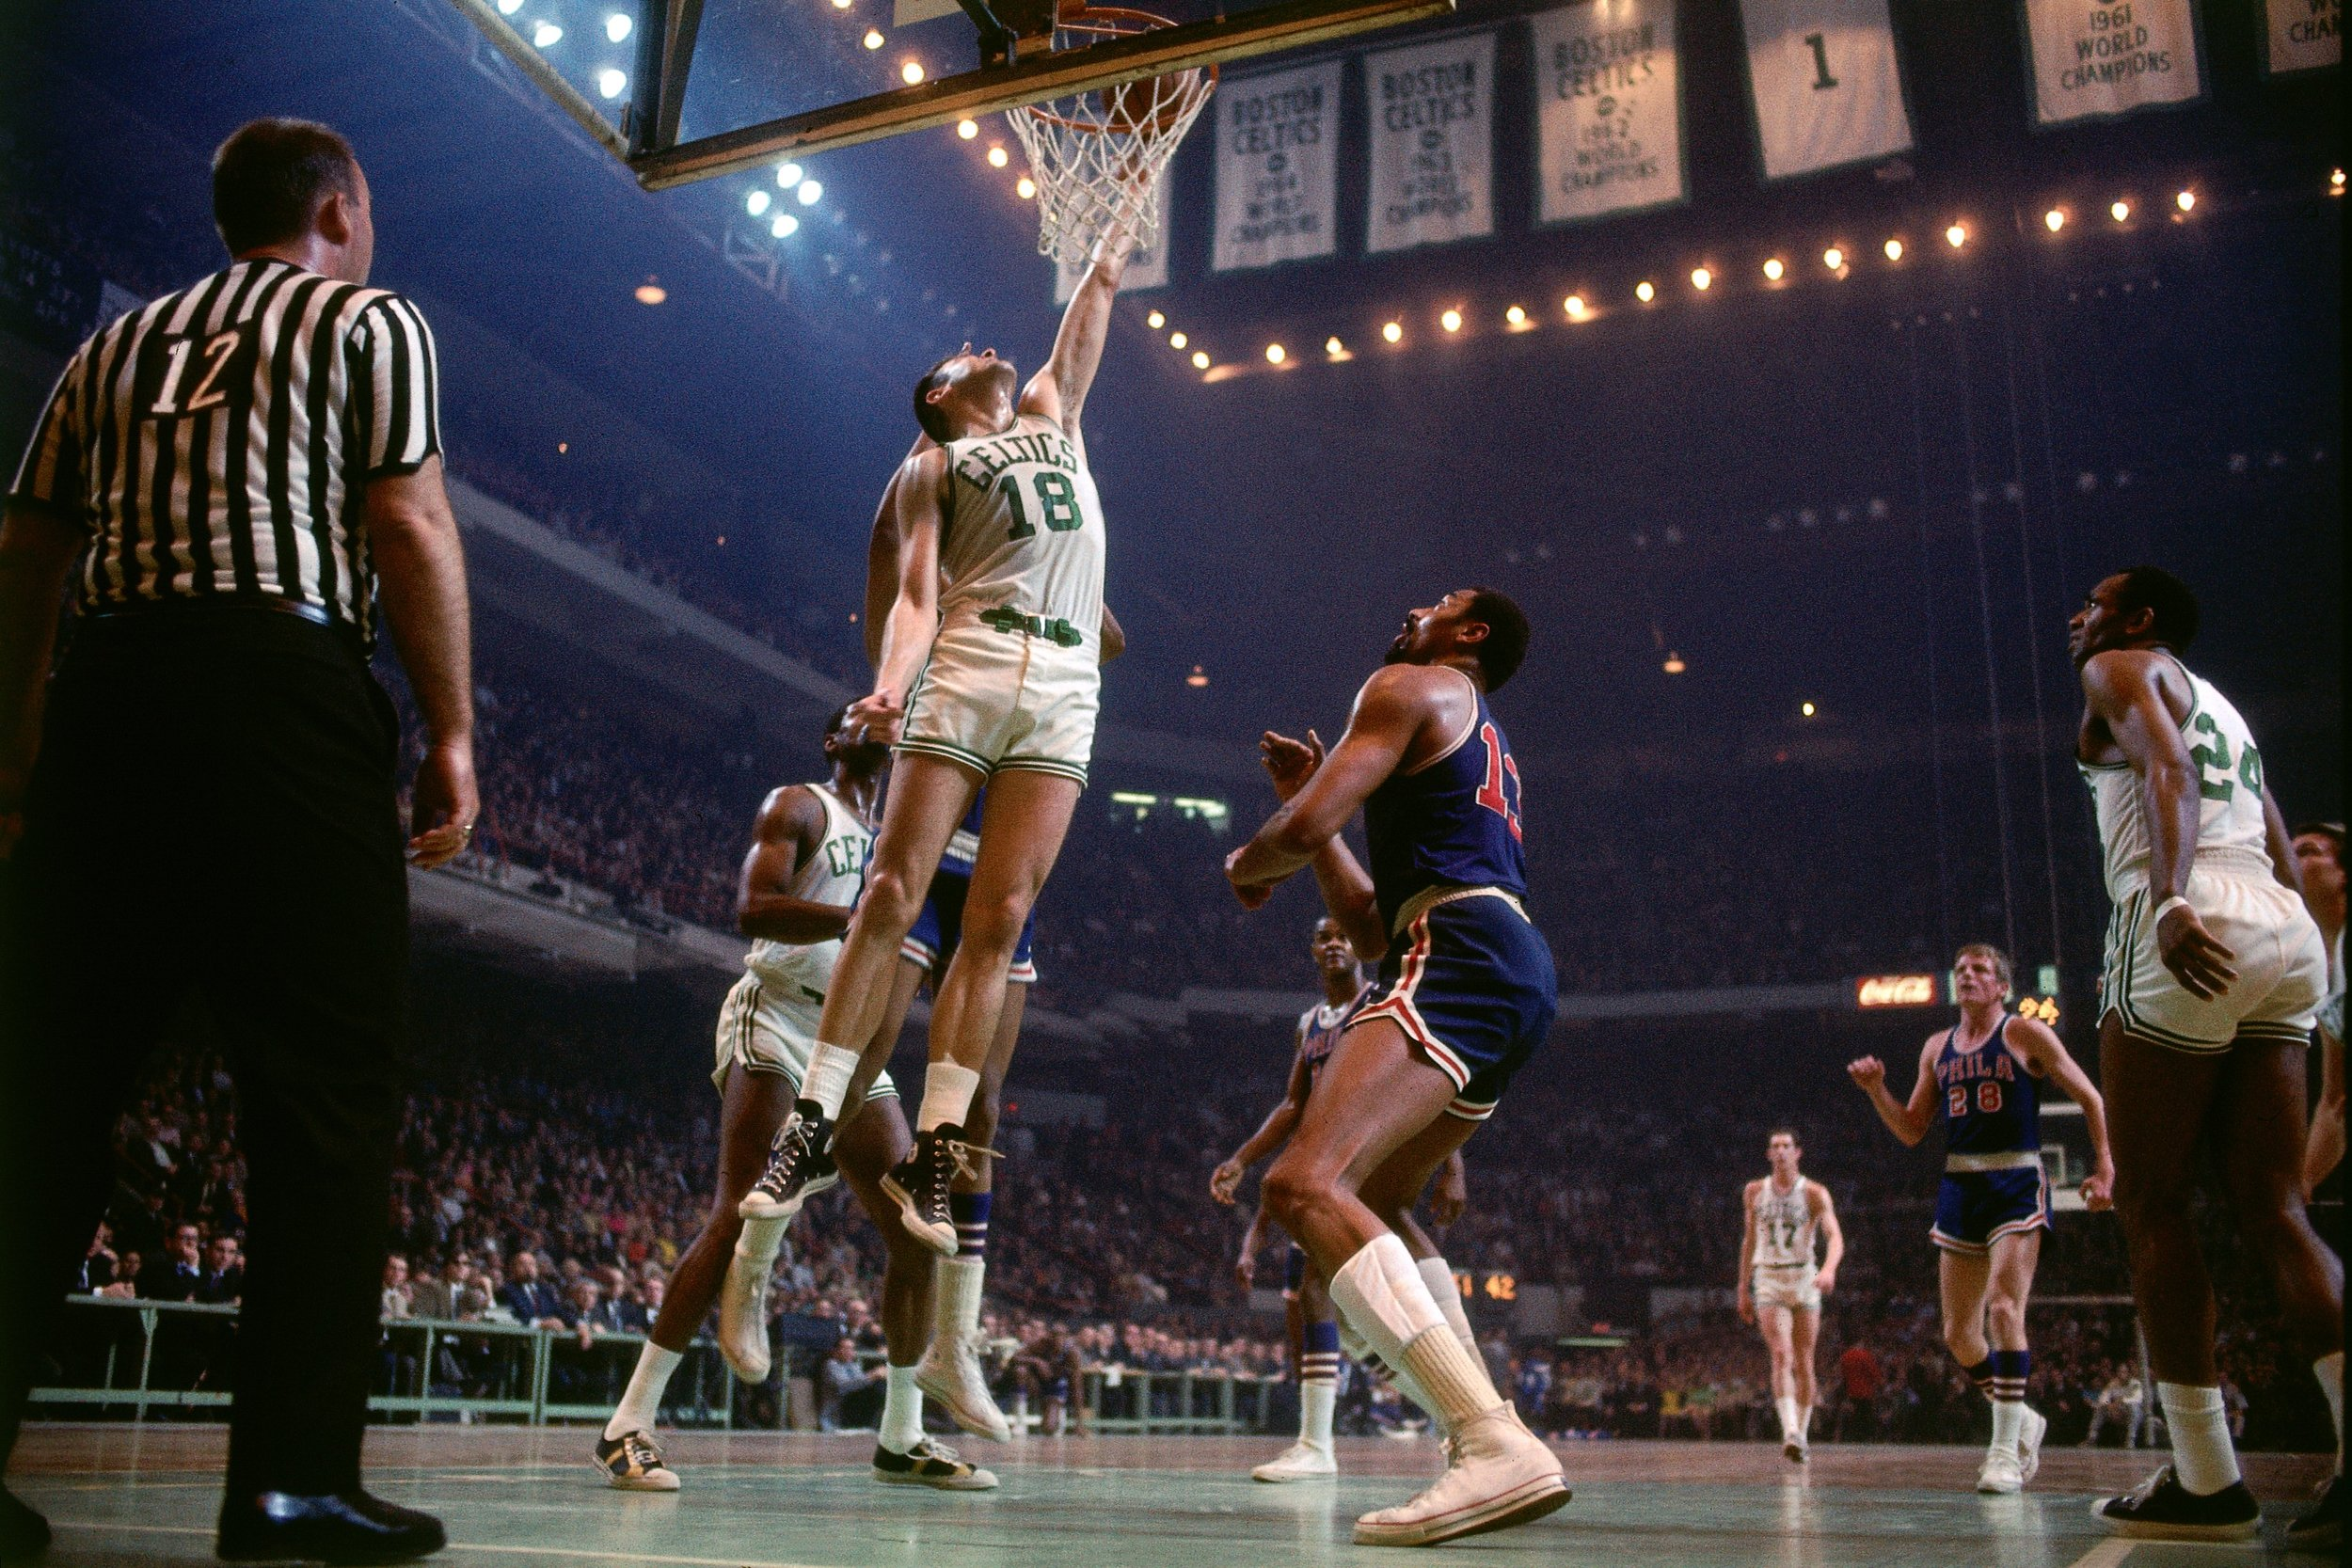 Howell cramming one and Wilt Chamberlain gets a front row seat.